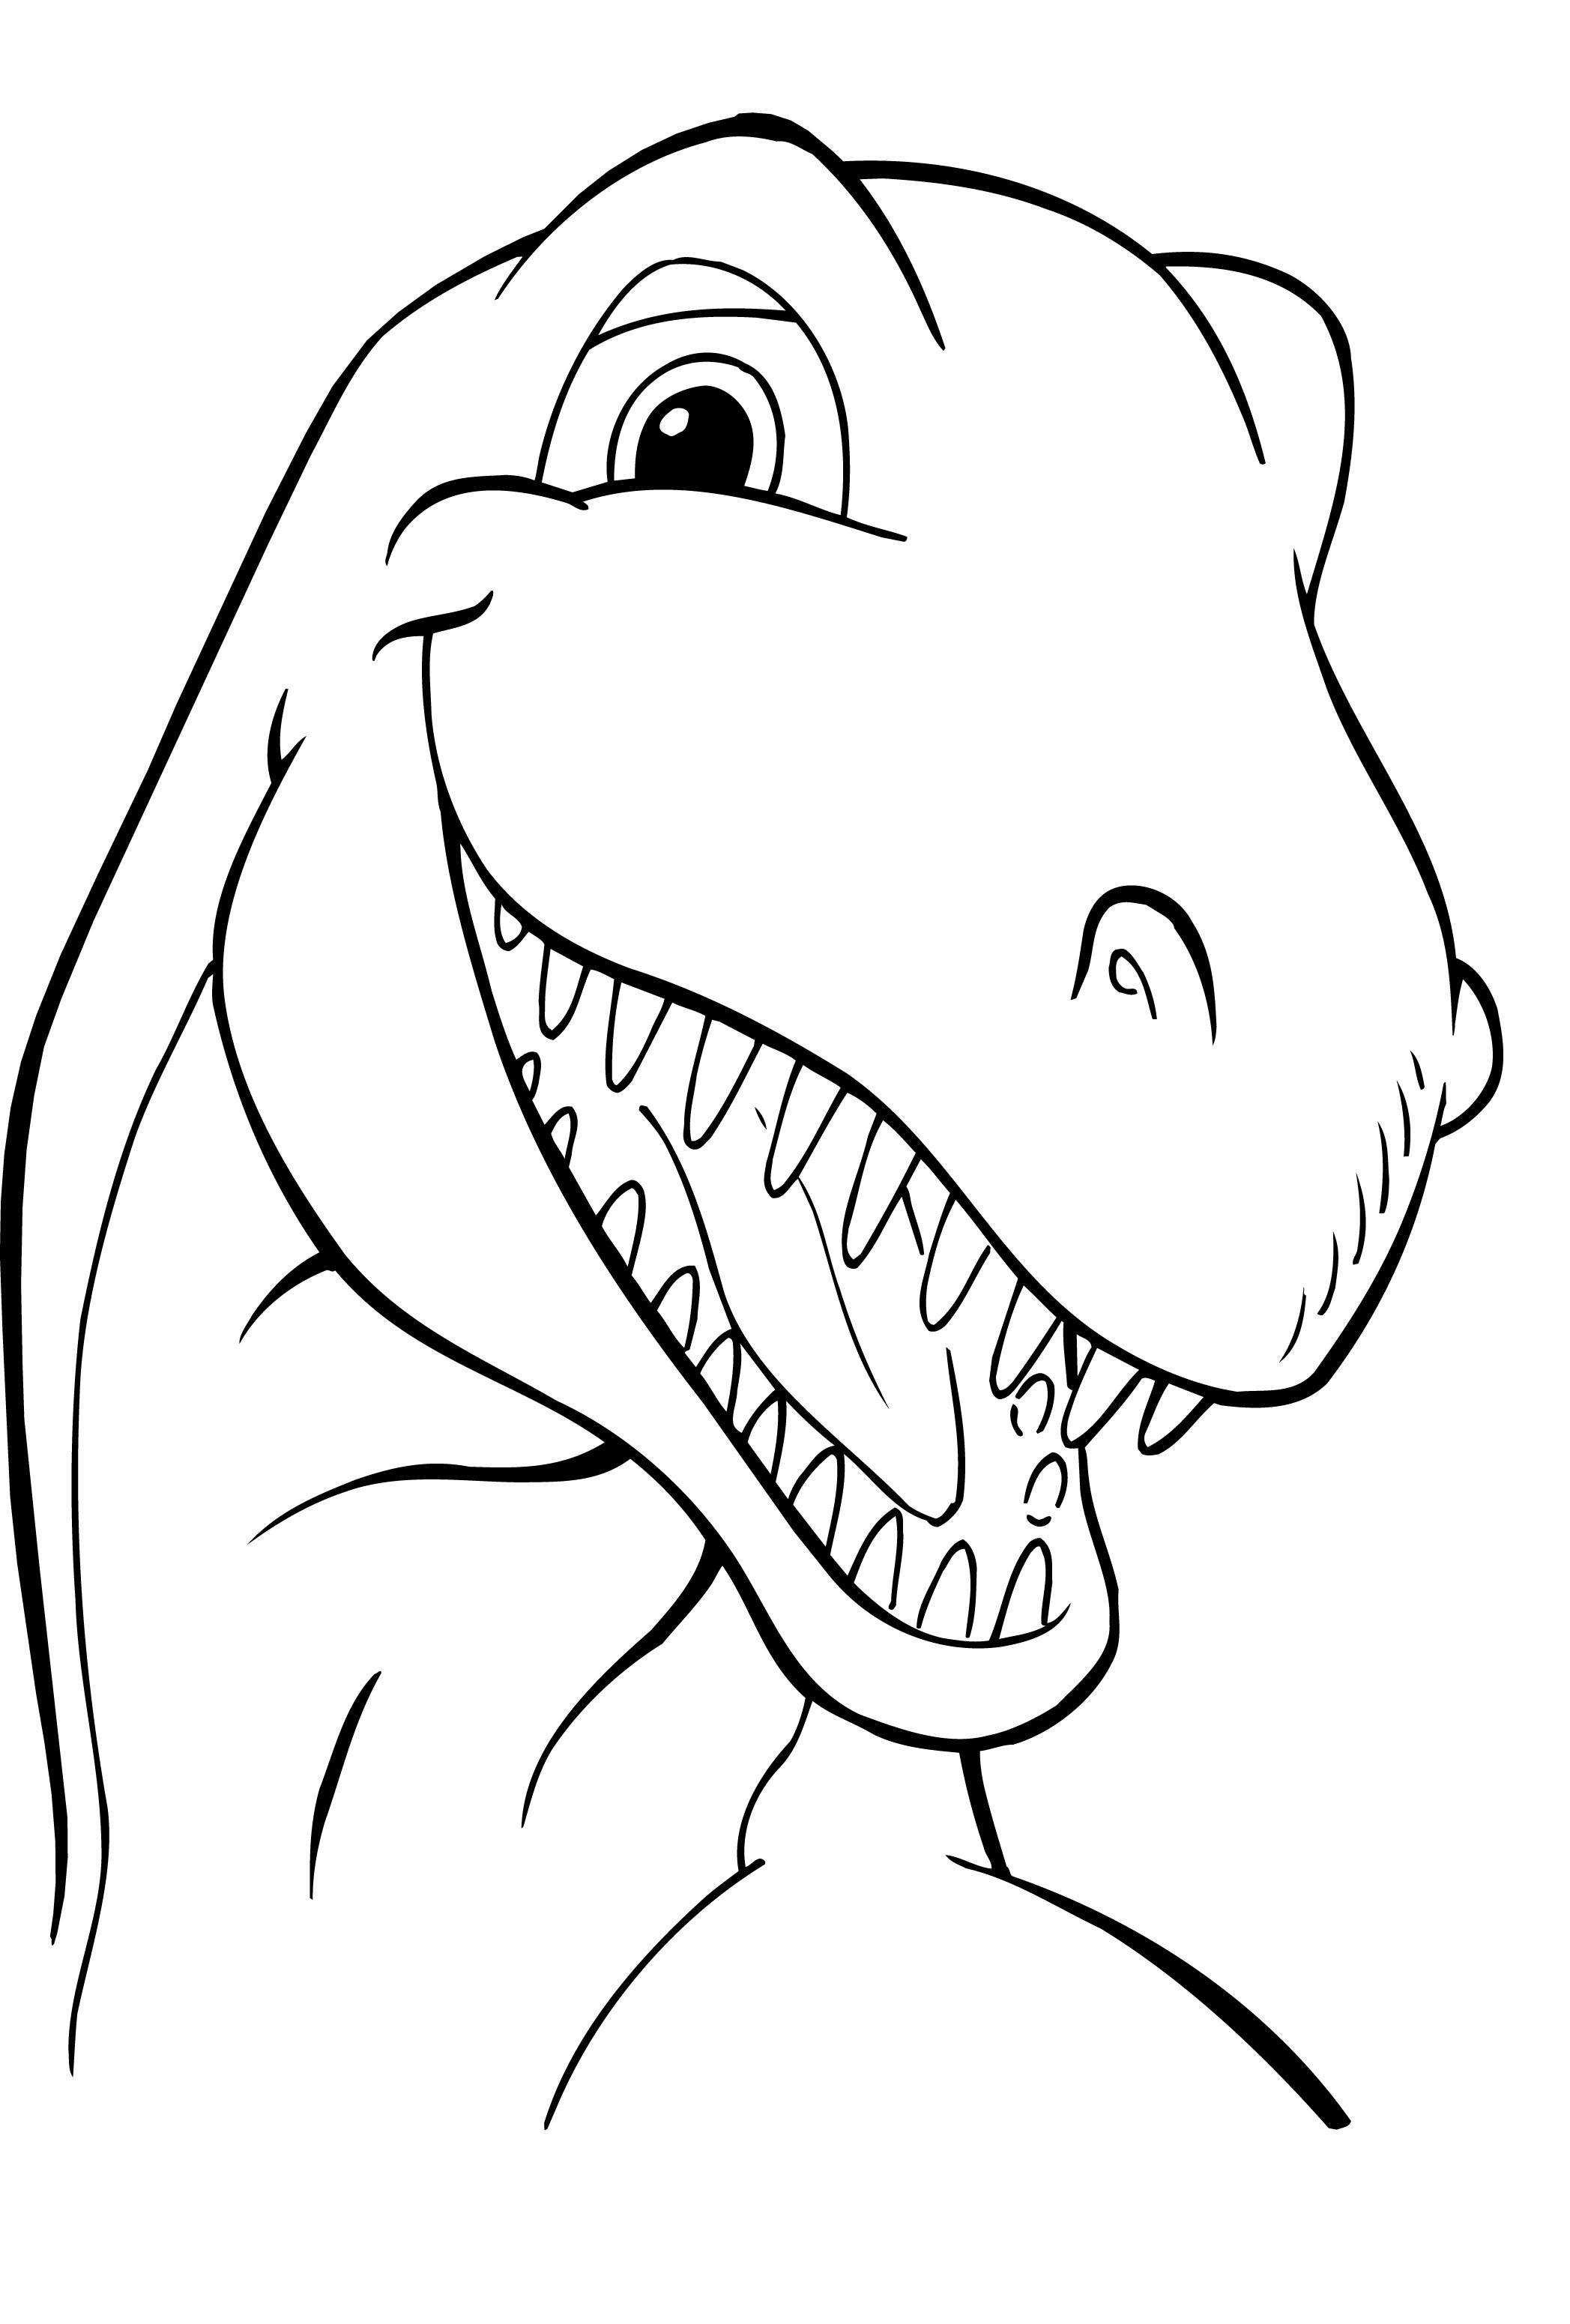 dinosaur coloring pages printable free coloring pages dinosaur free printable coloring pages pages free printable coloring dinosaur